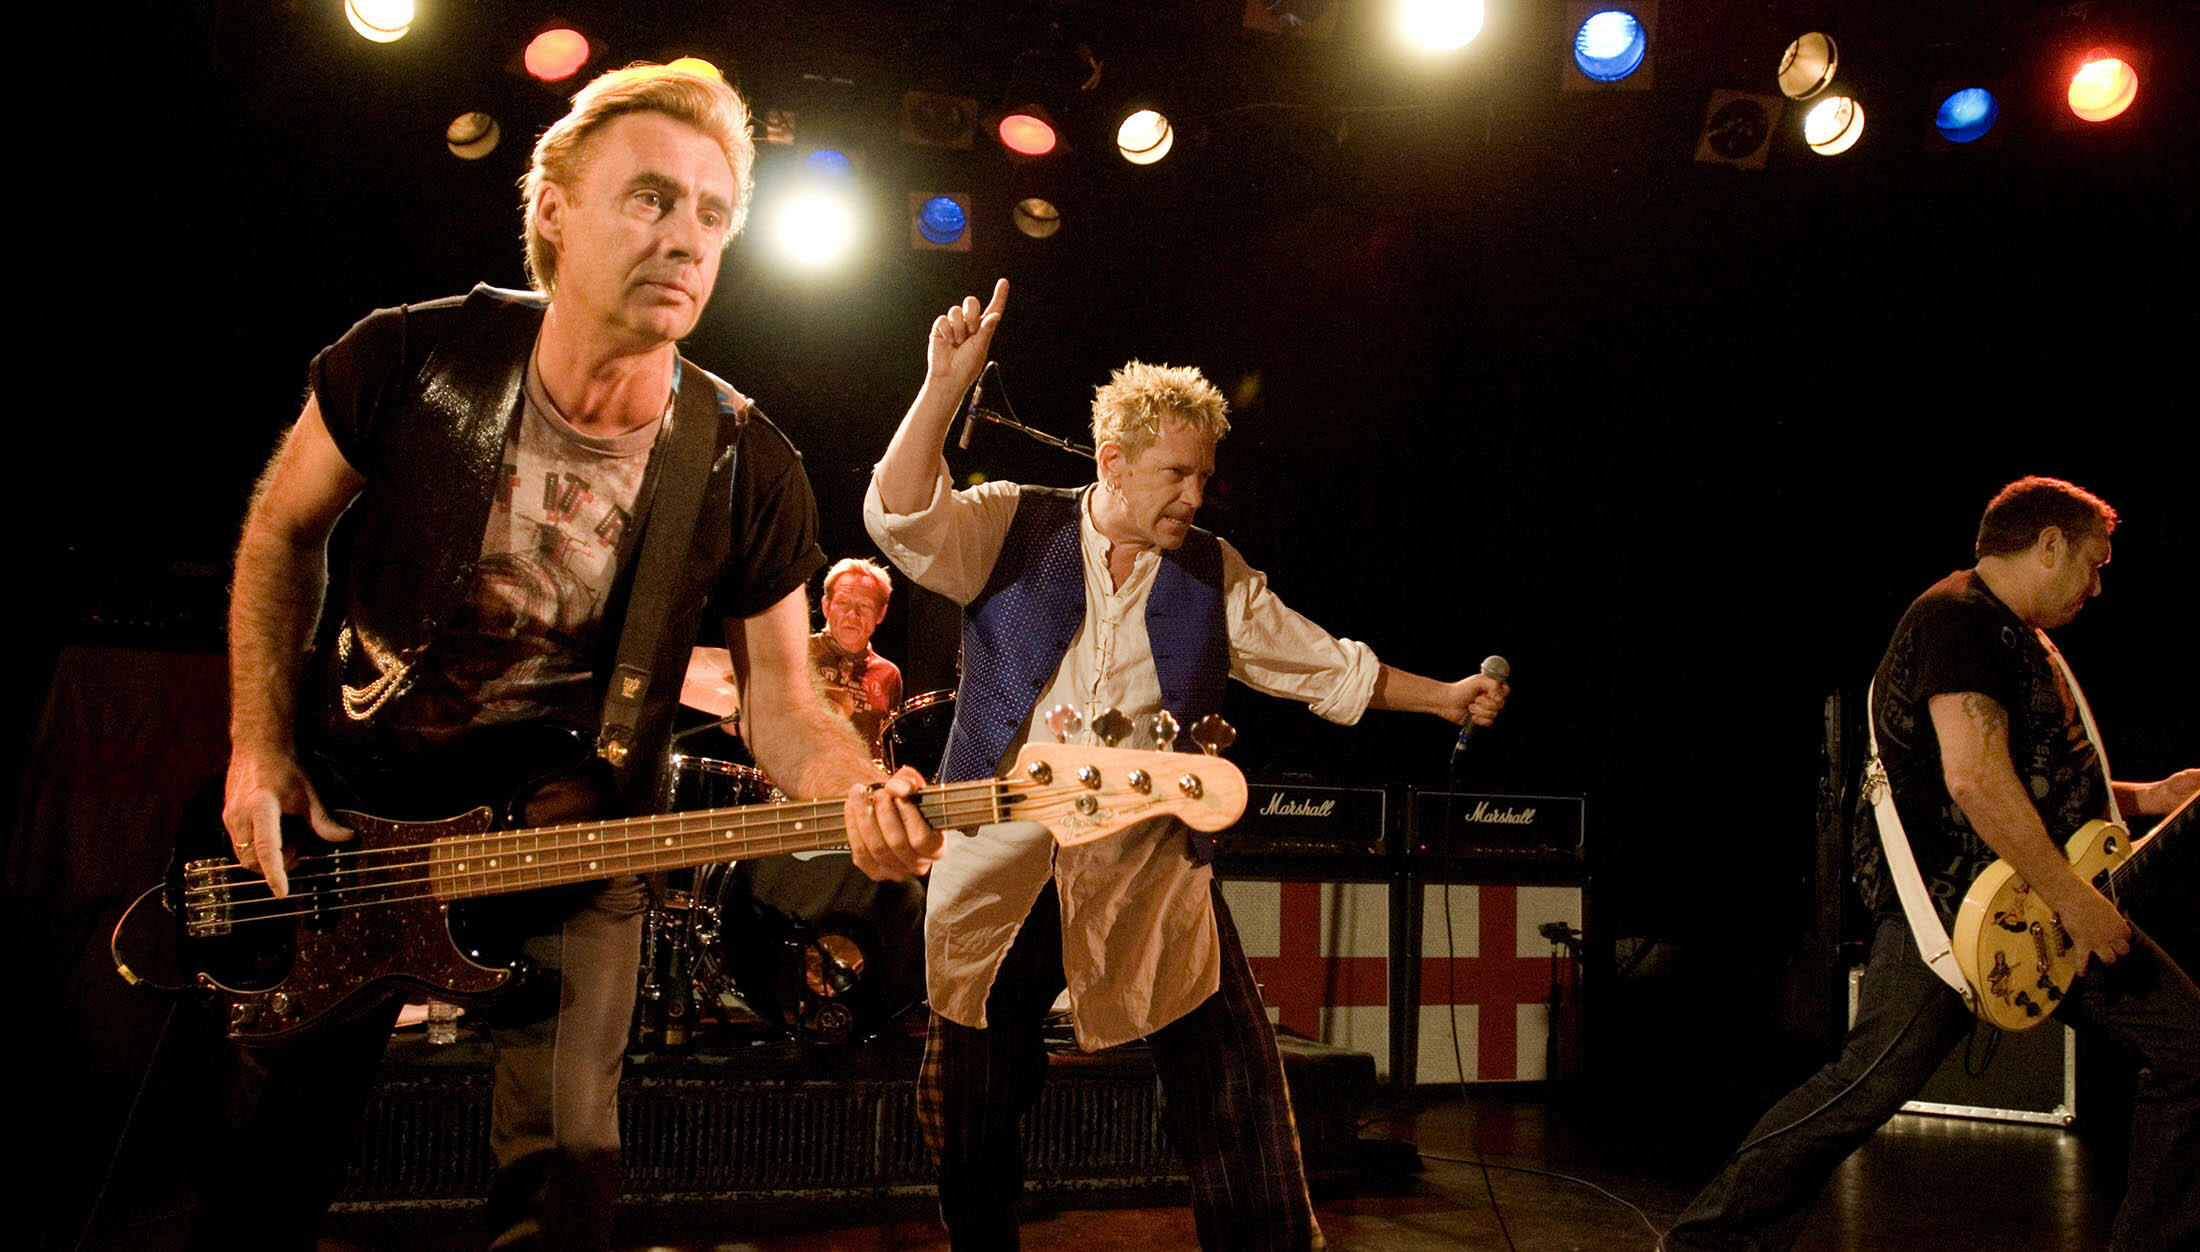 Sex Pistols' Glen Matlock Explains Reality Of Band Members' Relationship